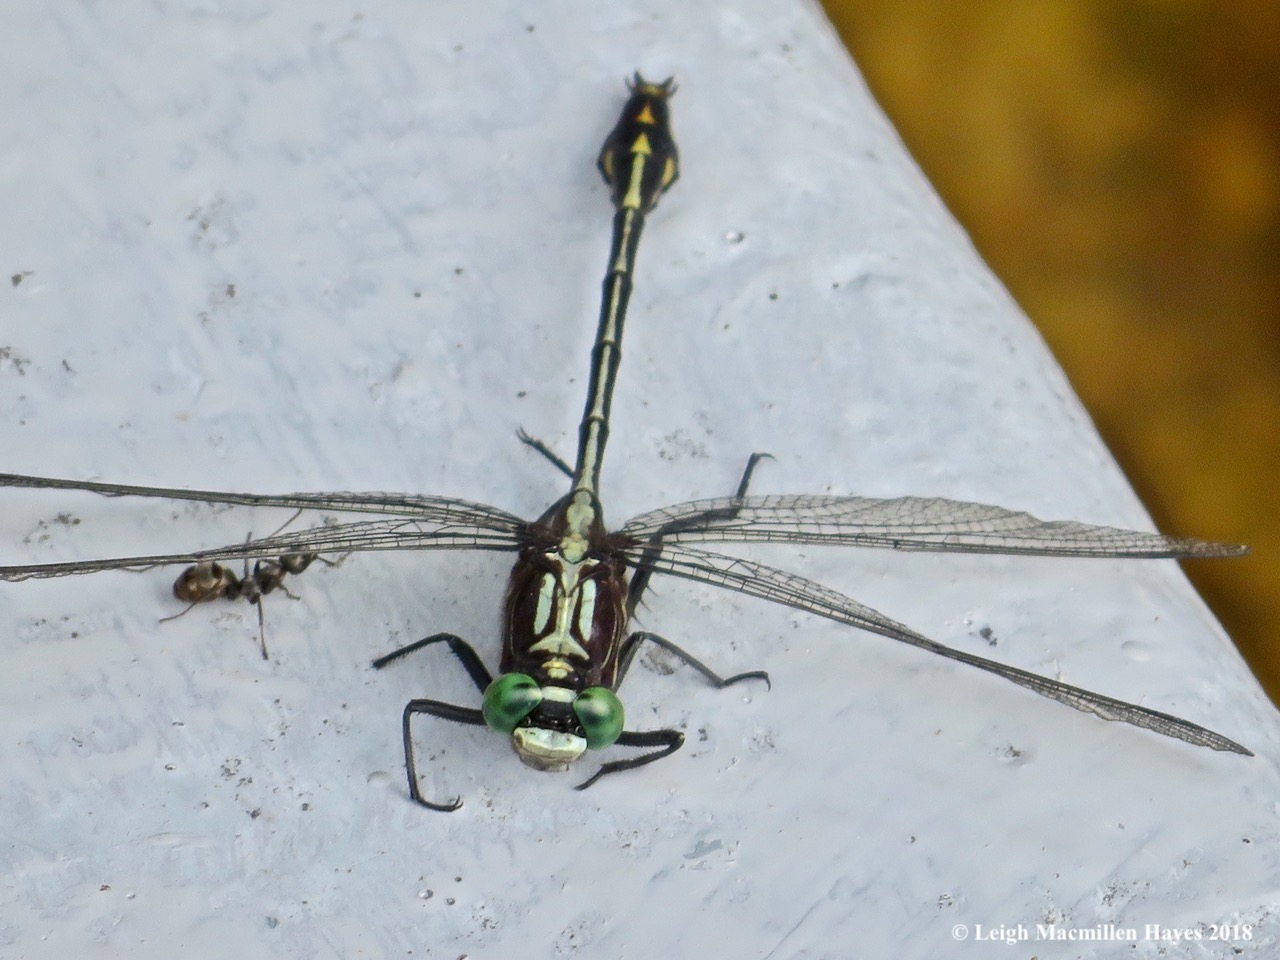 3-lancet clubtail and ant